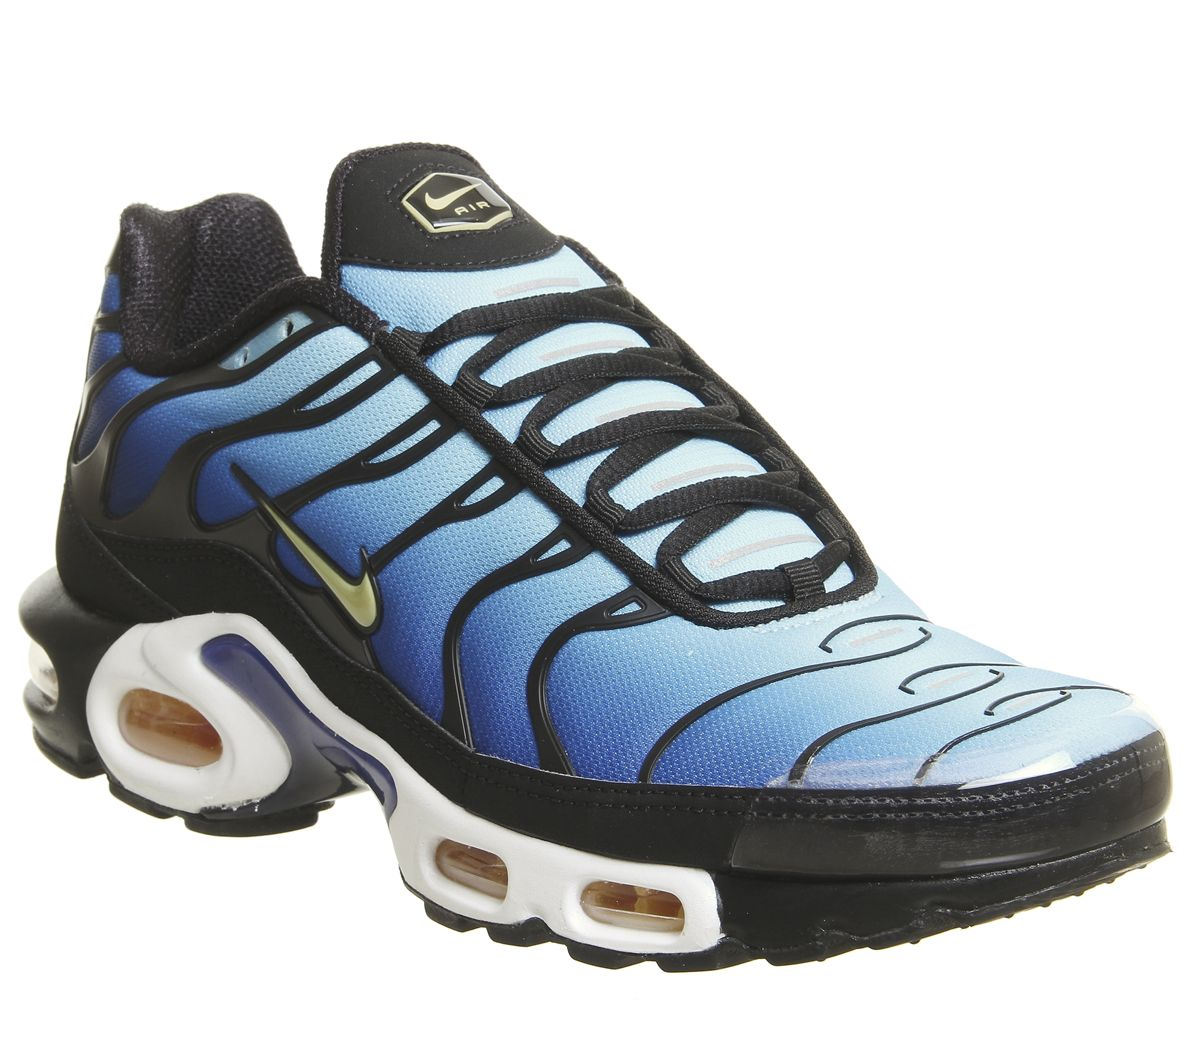 sports shoes f69cc 73c32 Air Max Plus Trainers